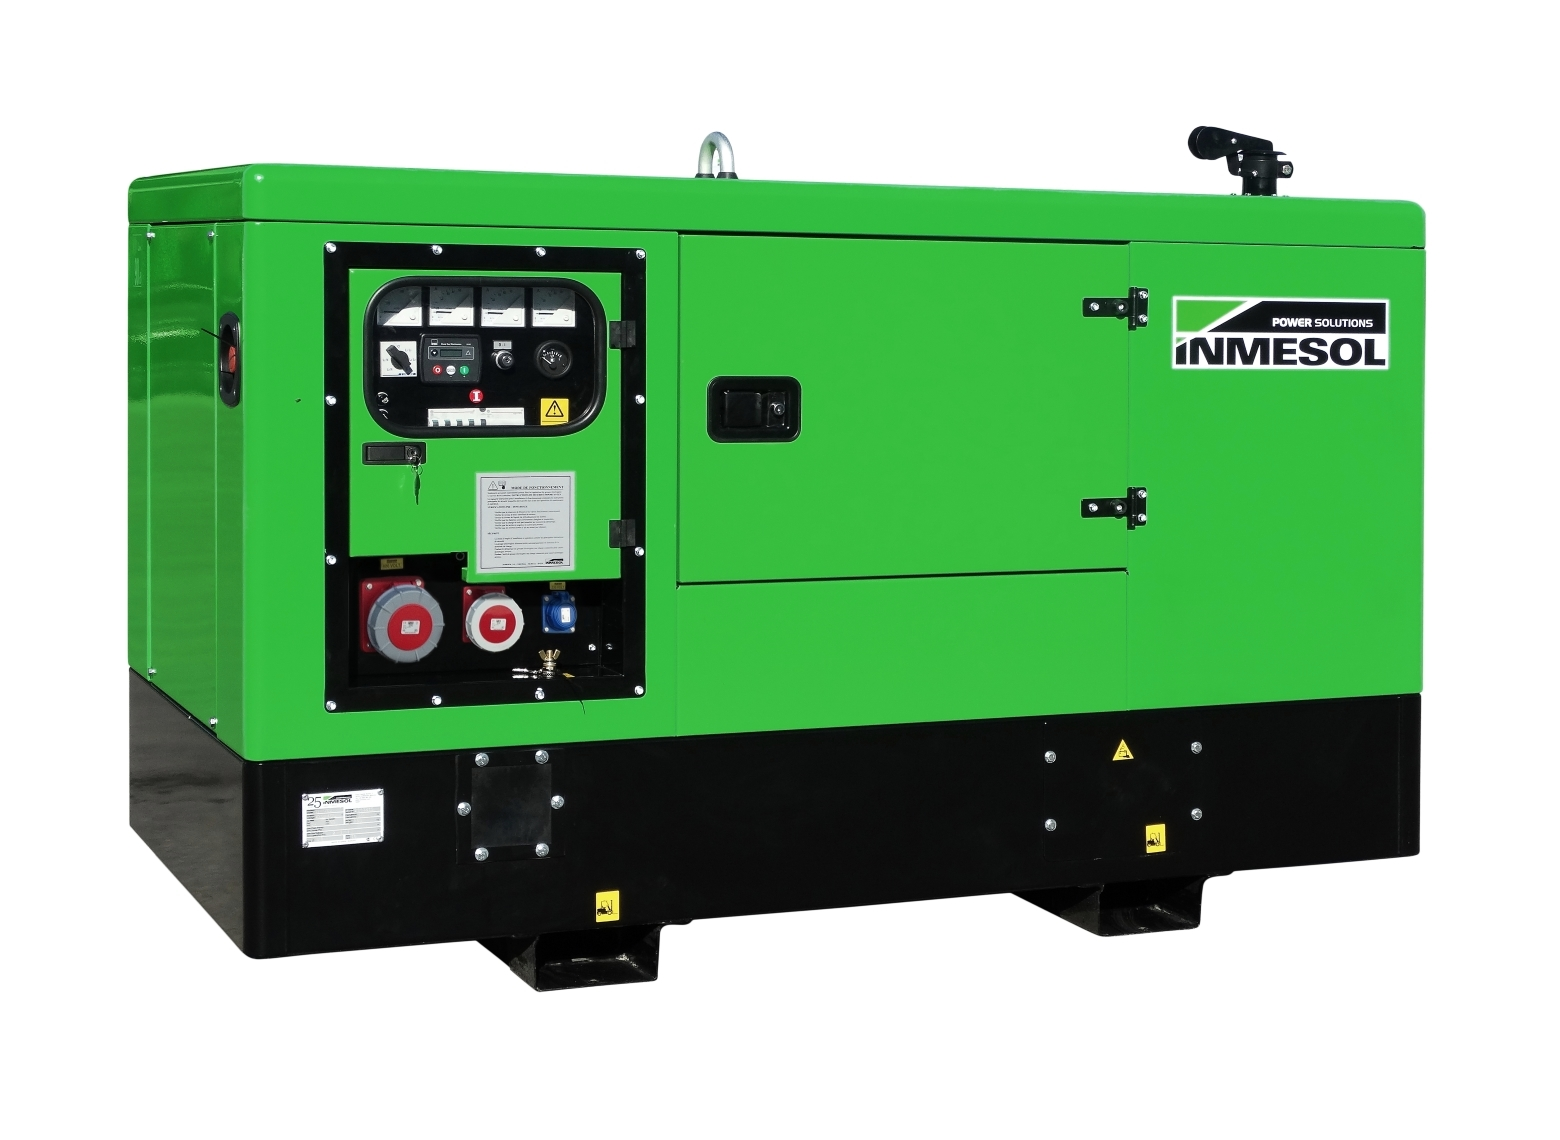 Generator with manual control panel.ID-014 - DEUTZ - F2M2011 - 1.500 R.P.M. | 50 Hz